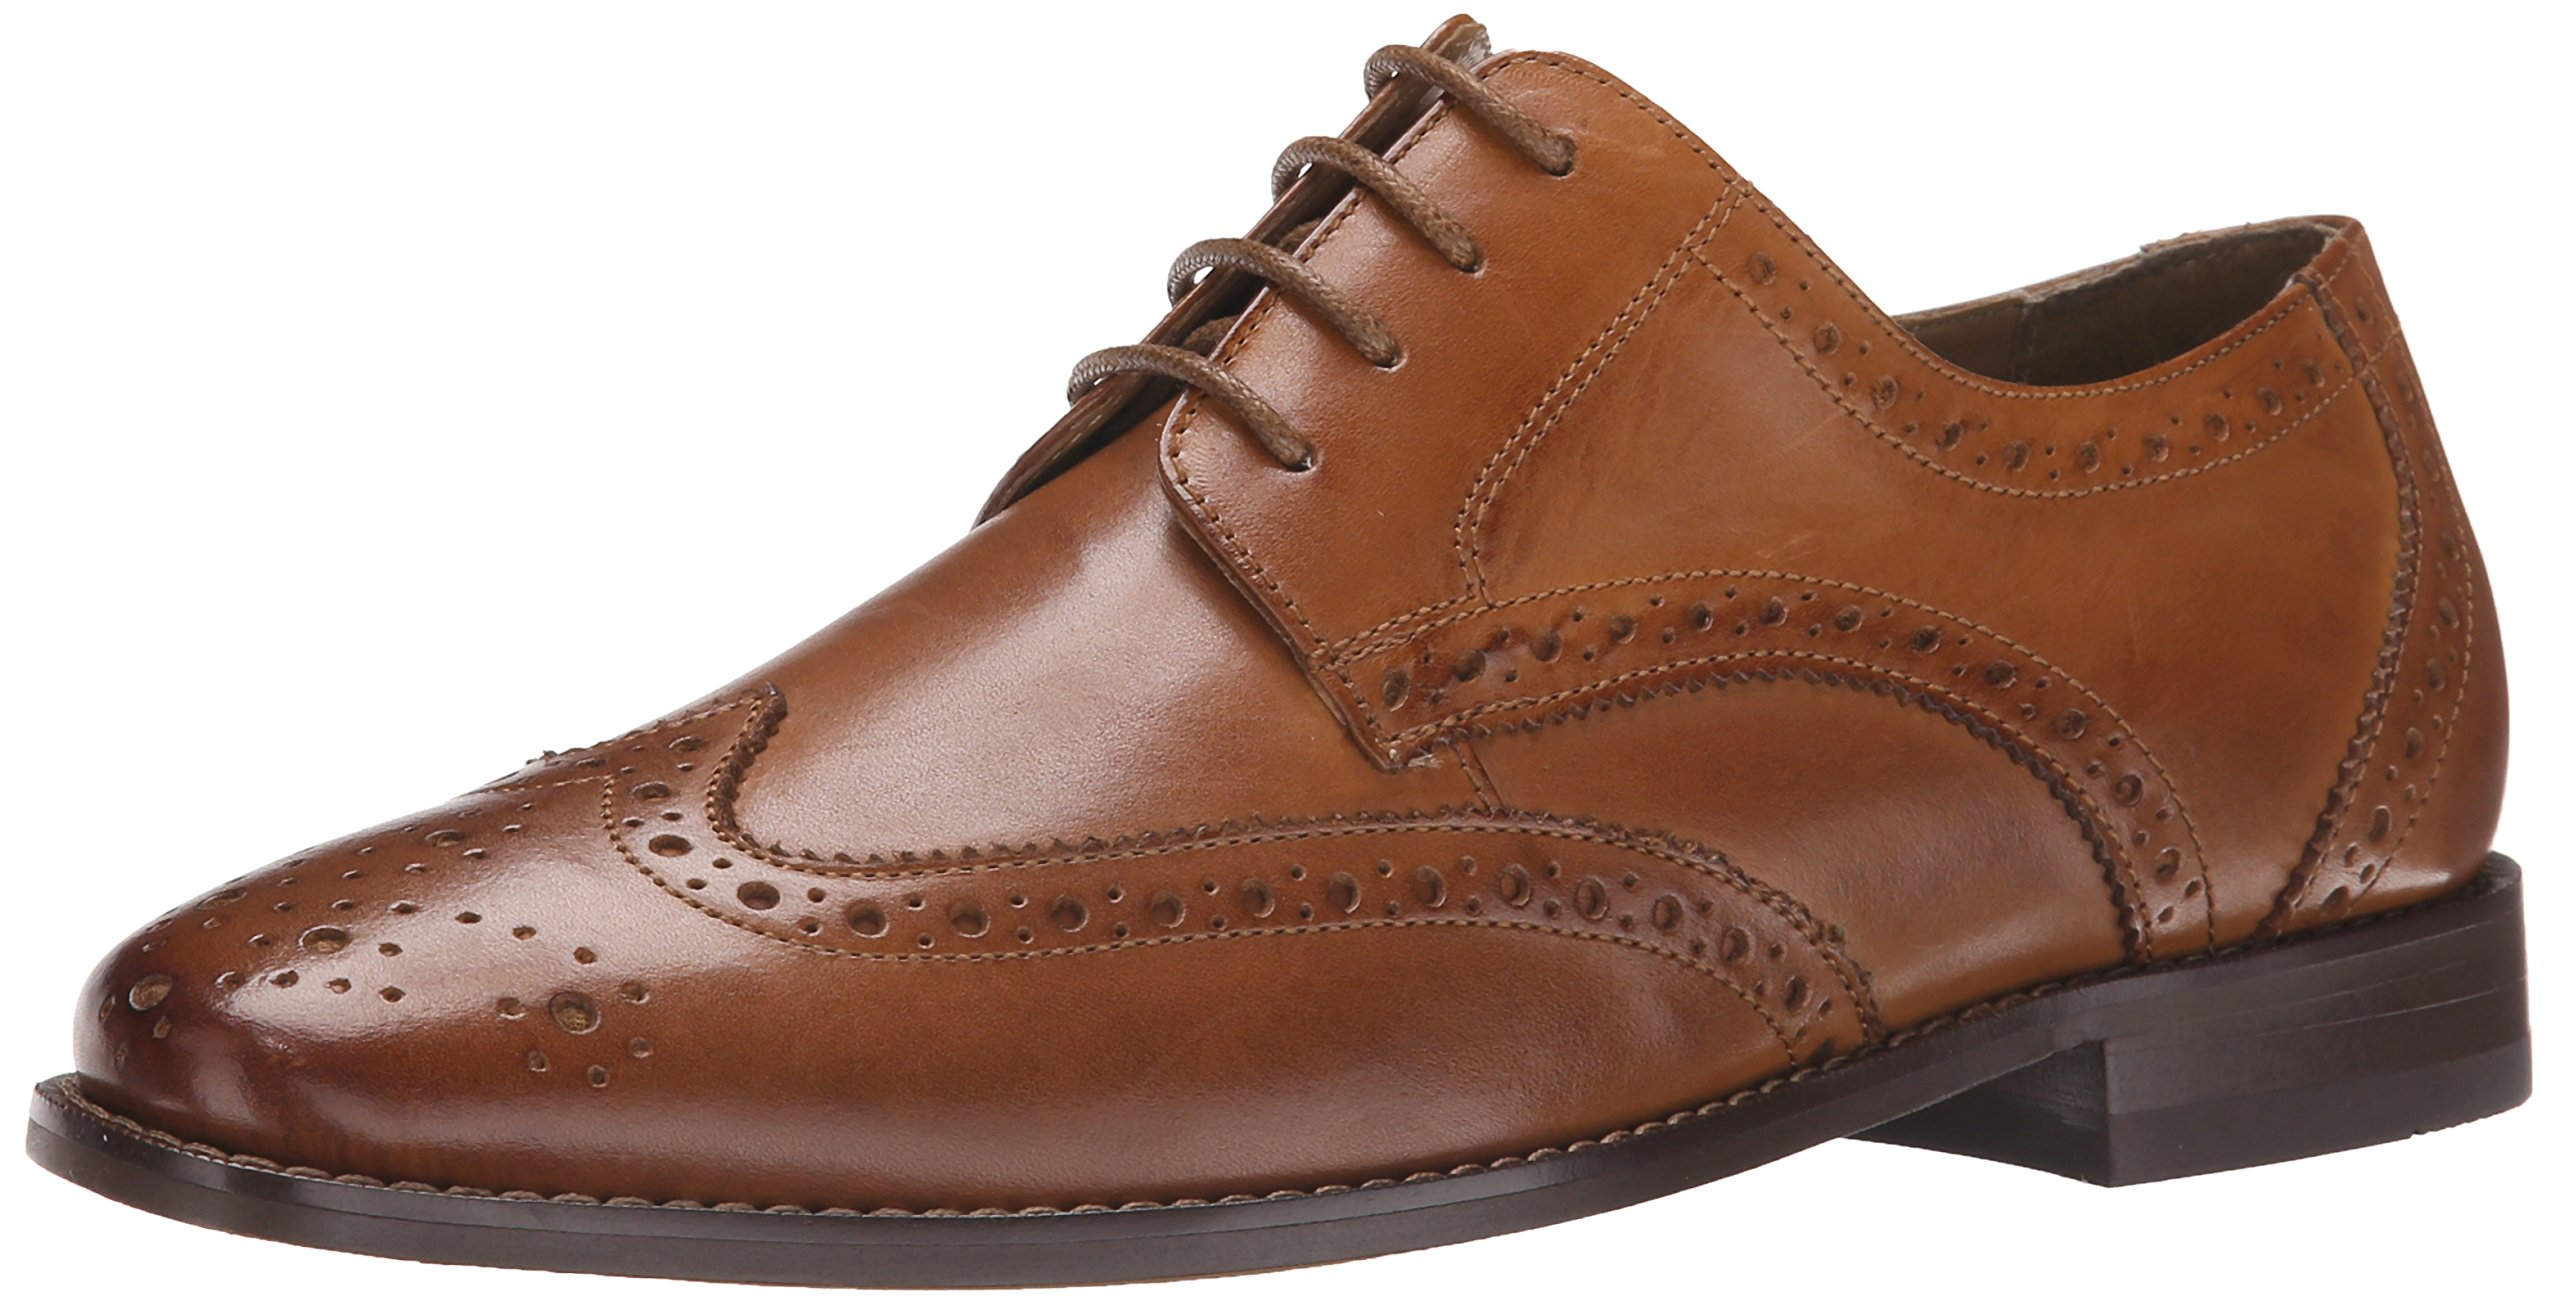 Florsheim Men's Montinaro Wingtip Dress Shoe Lace up Oxford, Saddle Tan, 8.5 3E US by Florsheim